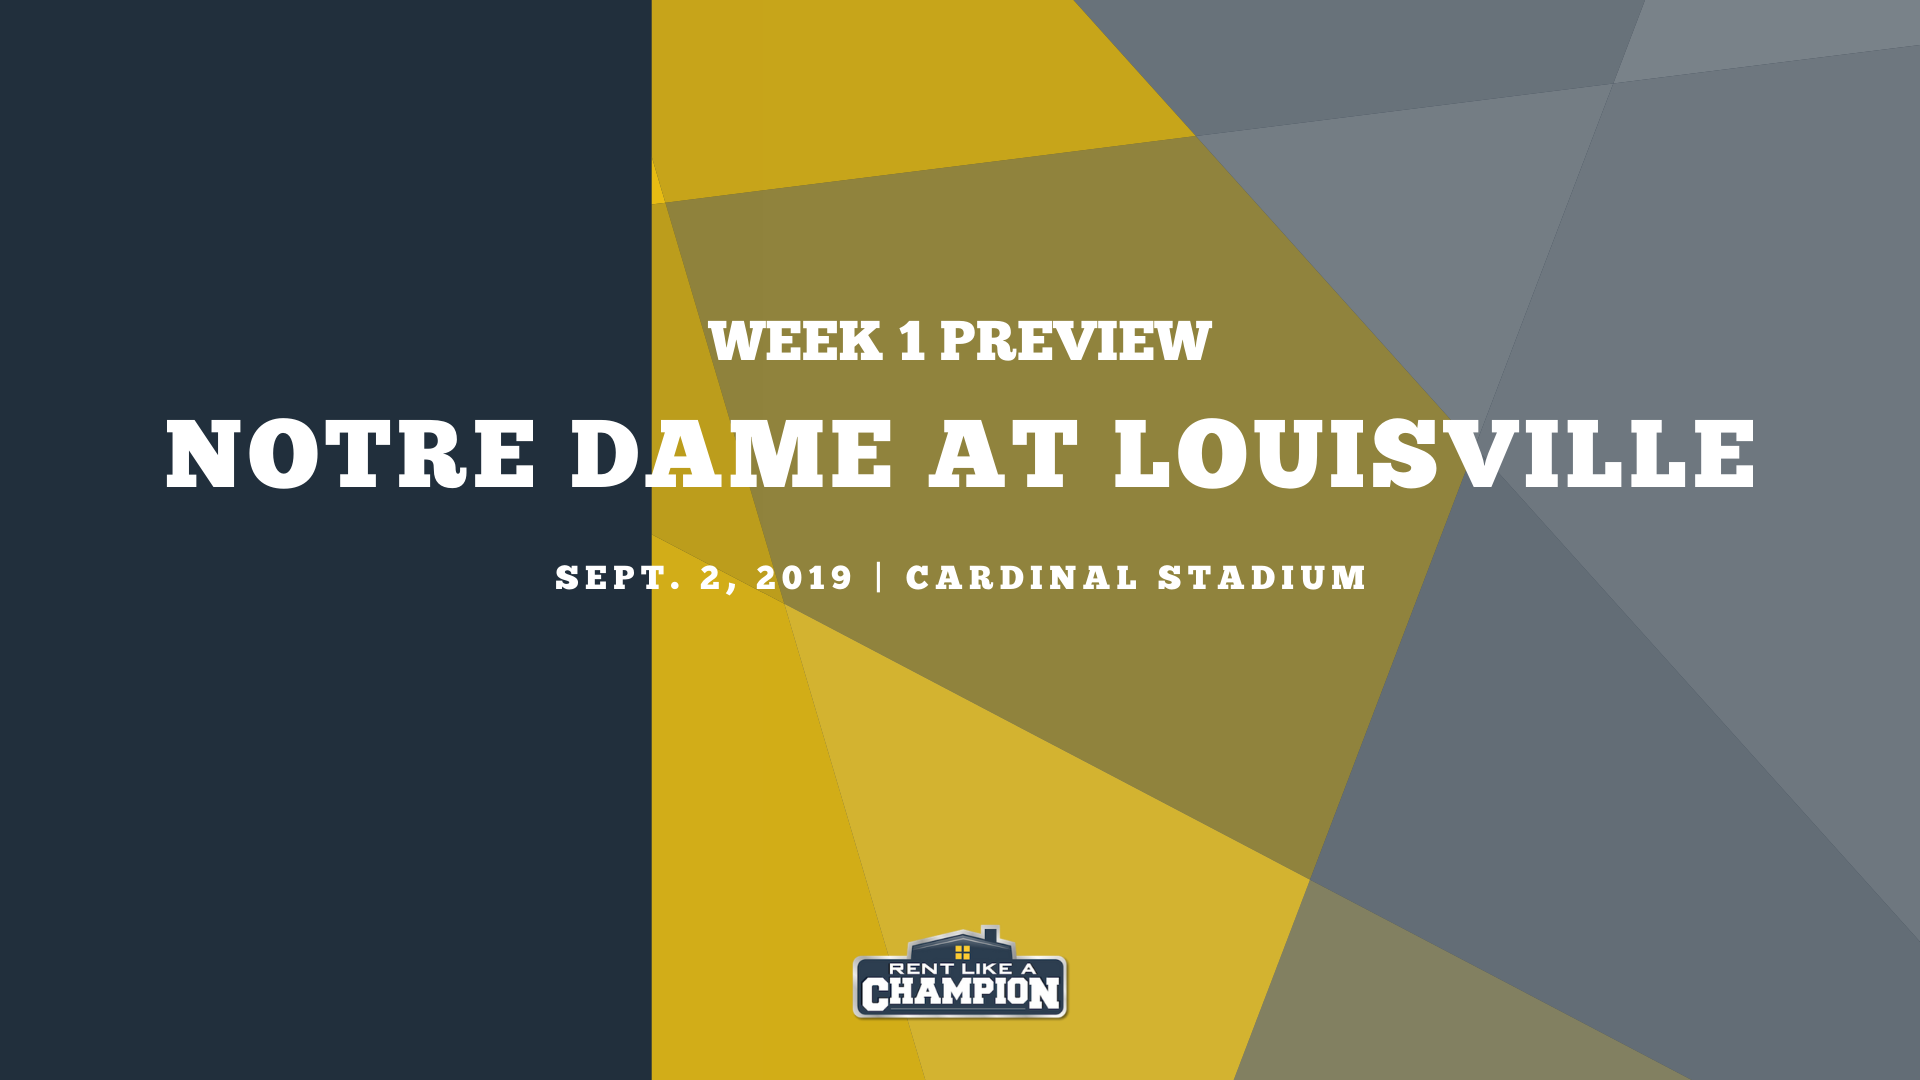 Notre Dame Game Preview Template (1)